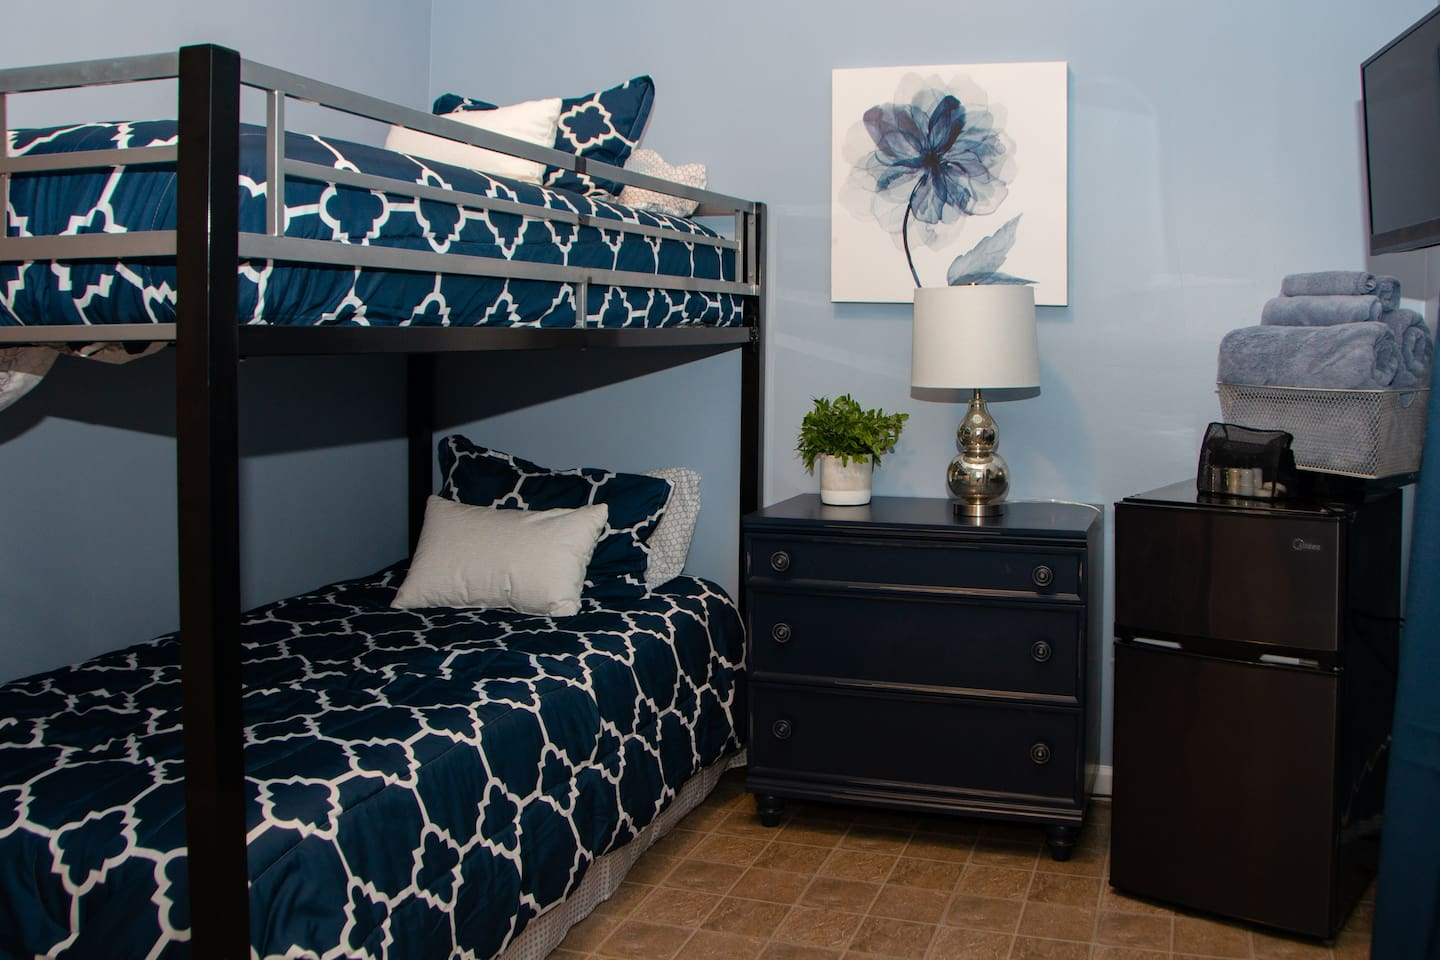 Have your separate space as you both unwind in this peaceful, relaxing bedroom equipped with ample heating, comfy bedding, and lots of channels and Netflix/Hulu choices to choose from!